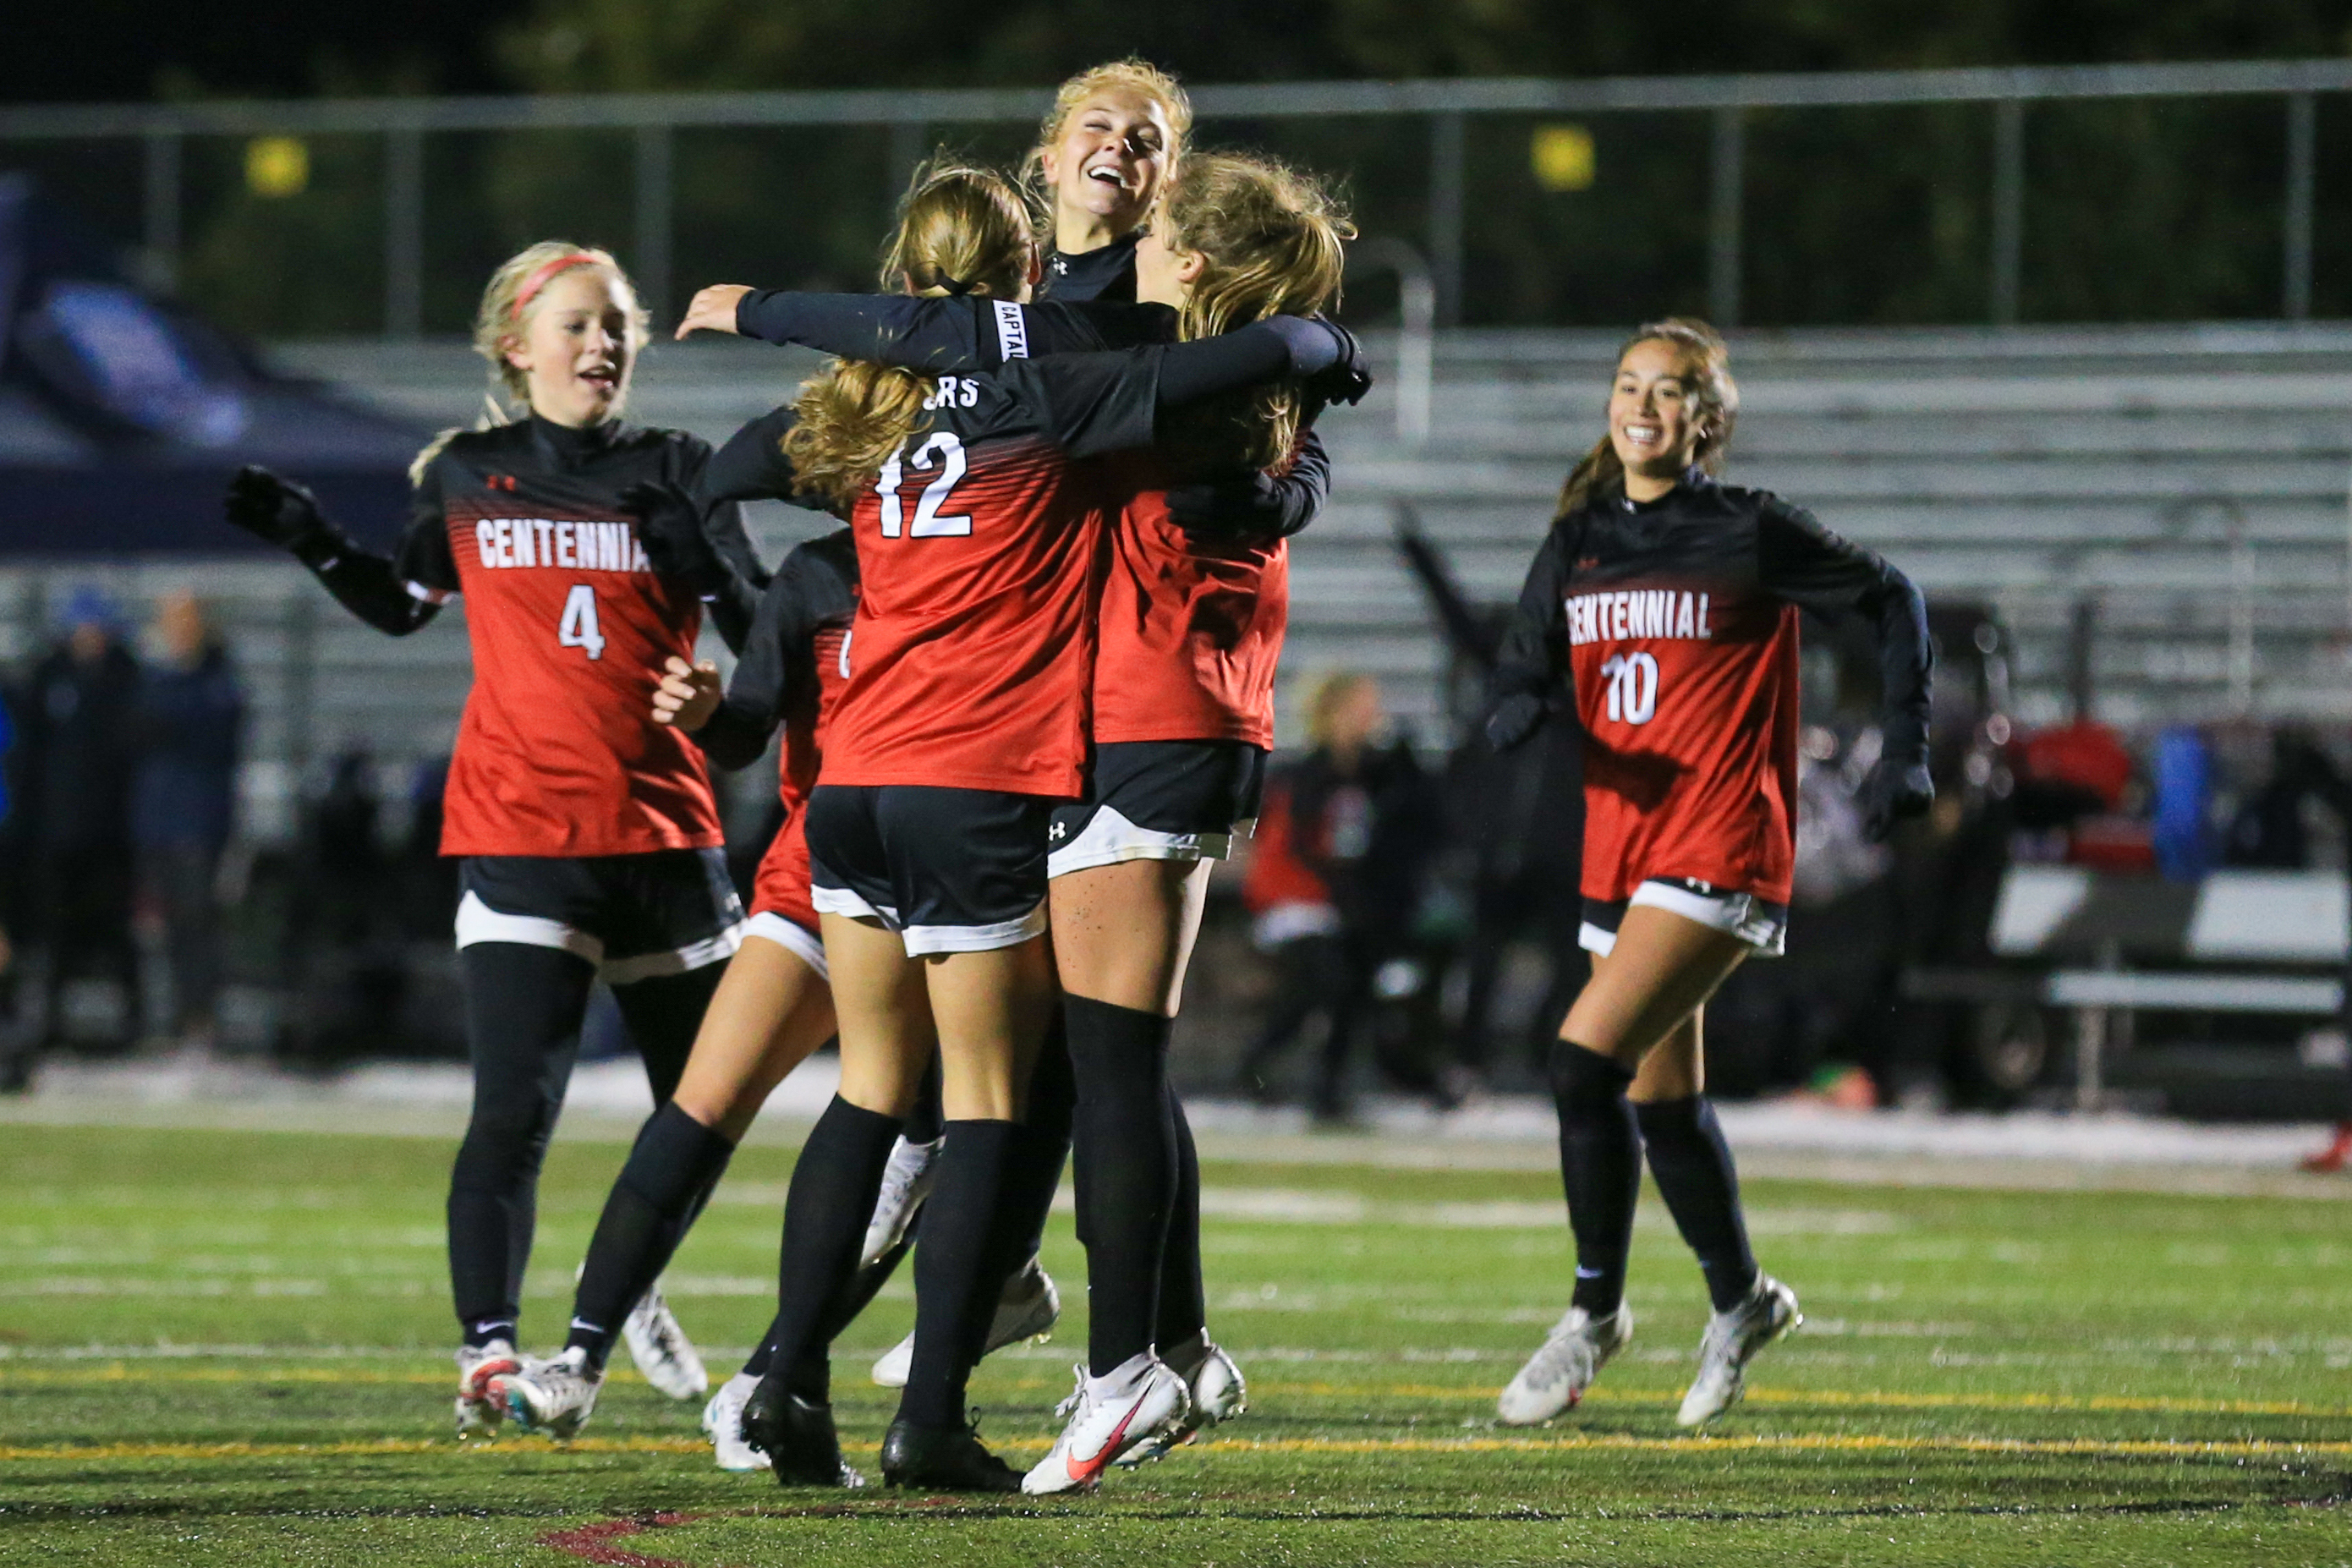 Centennial girls celebrate on the field in an Oct. 22 game against Blaine. Photo by Jeff Lawler, SportsEngine